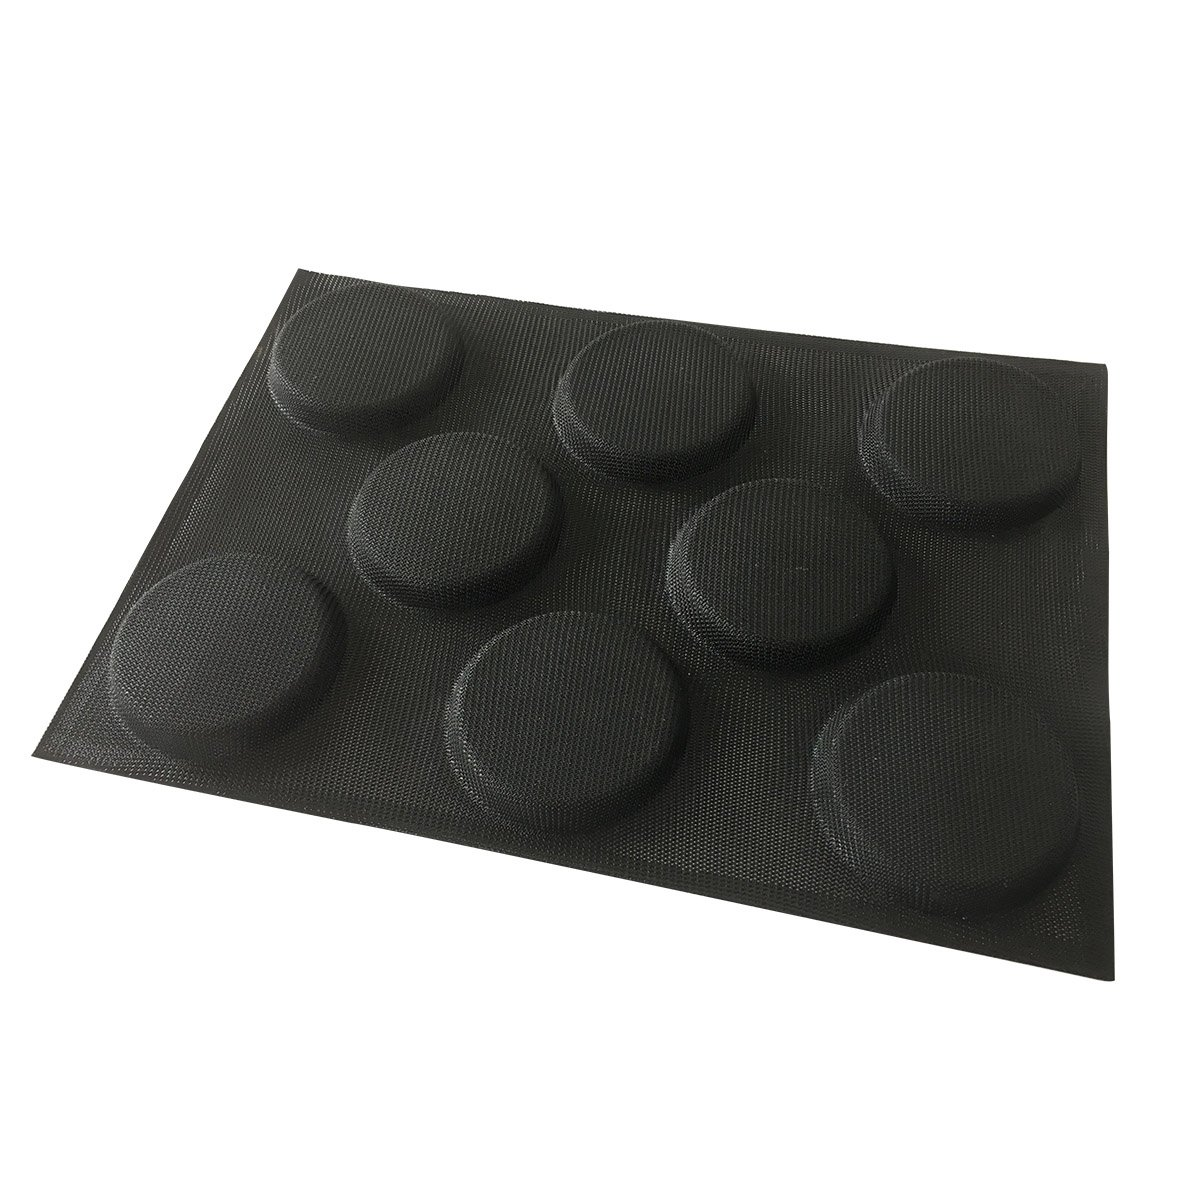 Bluedrop Silicone Hamburger Bread Forms Perforated Bakery Molds Non Stick  Baking Sheets Fit Half Pan Size